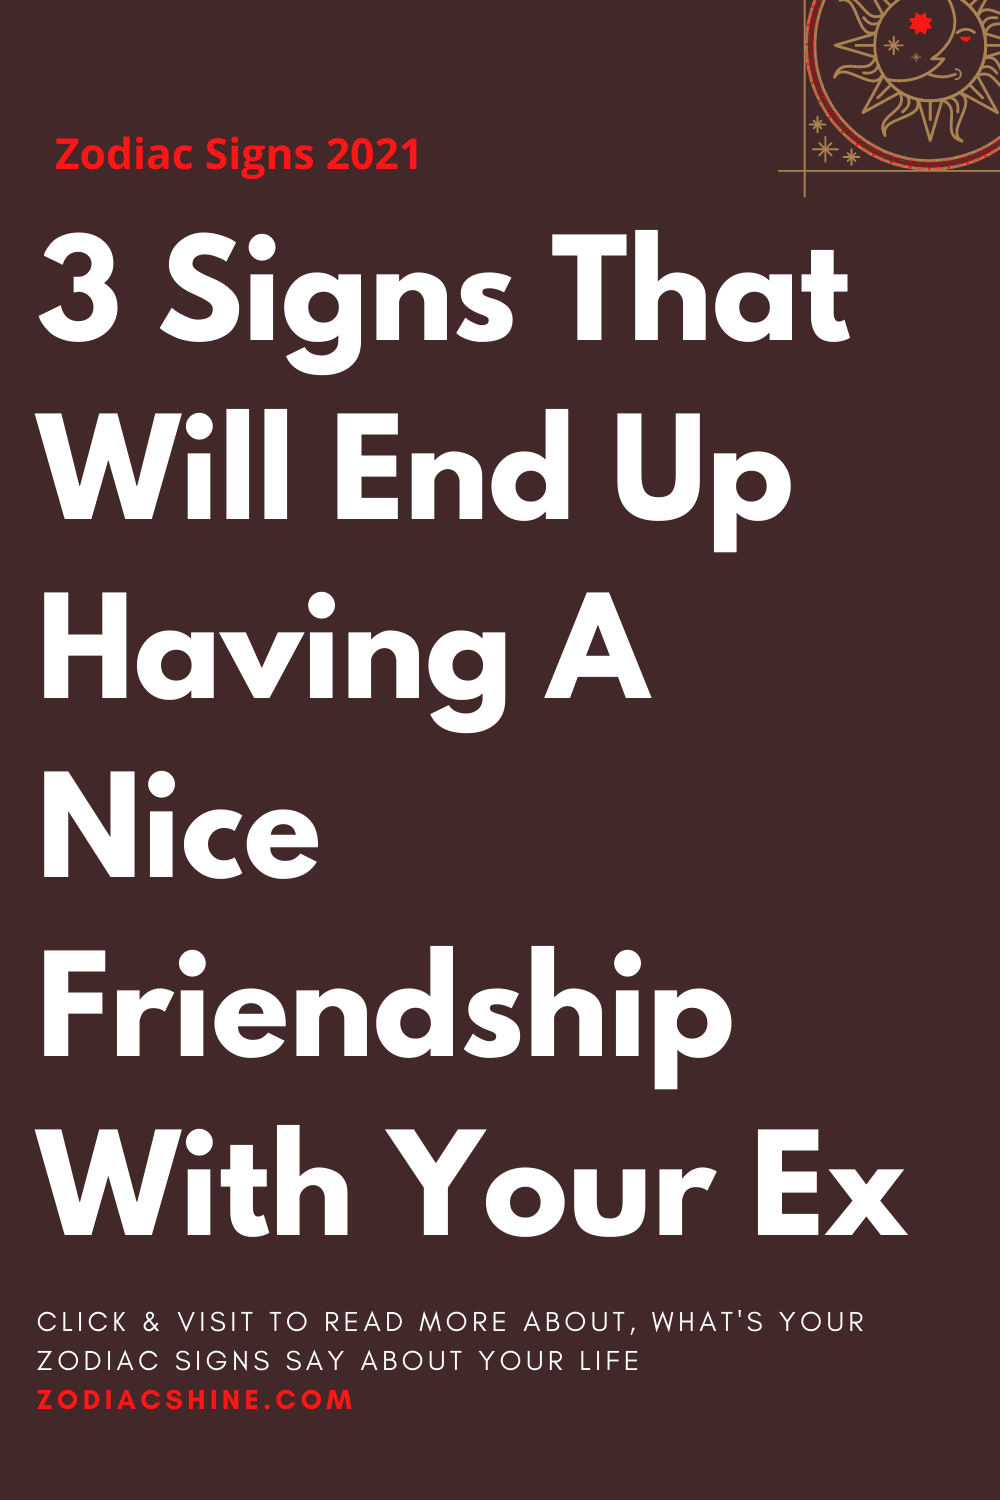 3 Signs That Will End Up Having A Nice Friendship With Your Ex